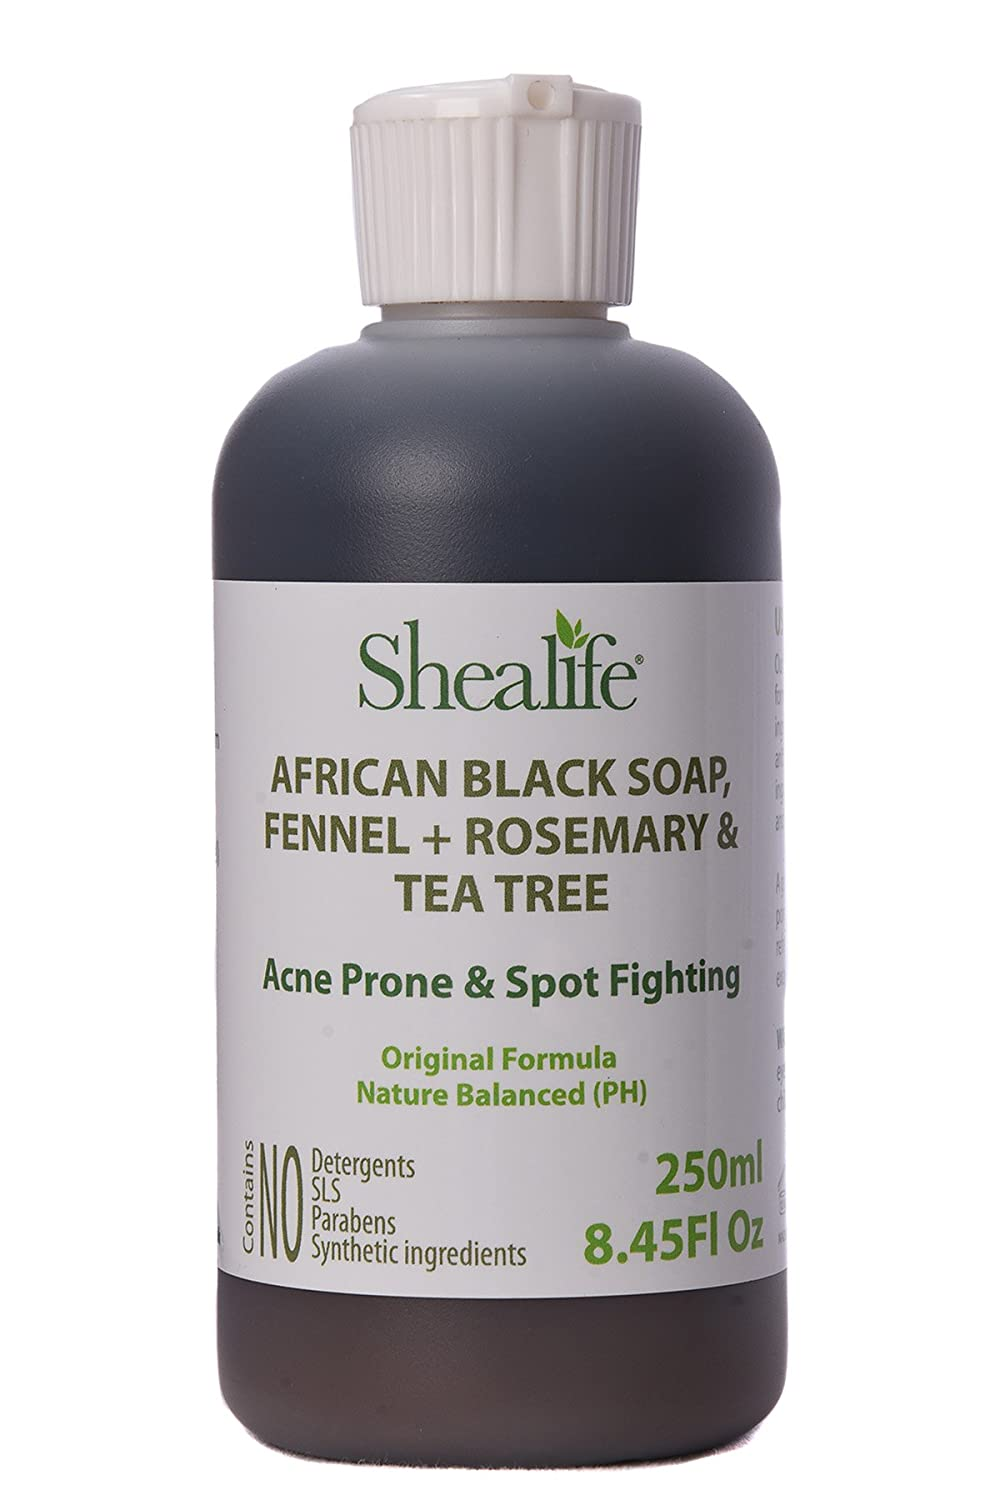 African Black Soap Liquid, 250ml, Fennel, Rosemary & Tea Tree Oil. Teenage Face wash Acne Prone & Spot Fighting Formula, Facial Cleanser, Face Spots, Pimples, Acne, Facial Wash, Moisturising Formula Contains No SLS, Detergents & Parabens. Ideal for very Se